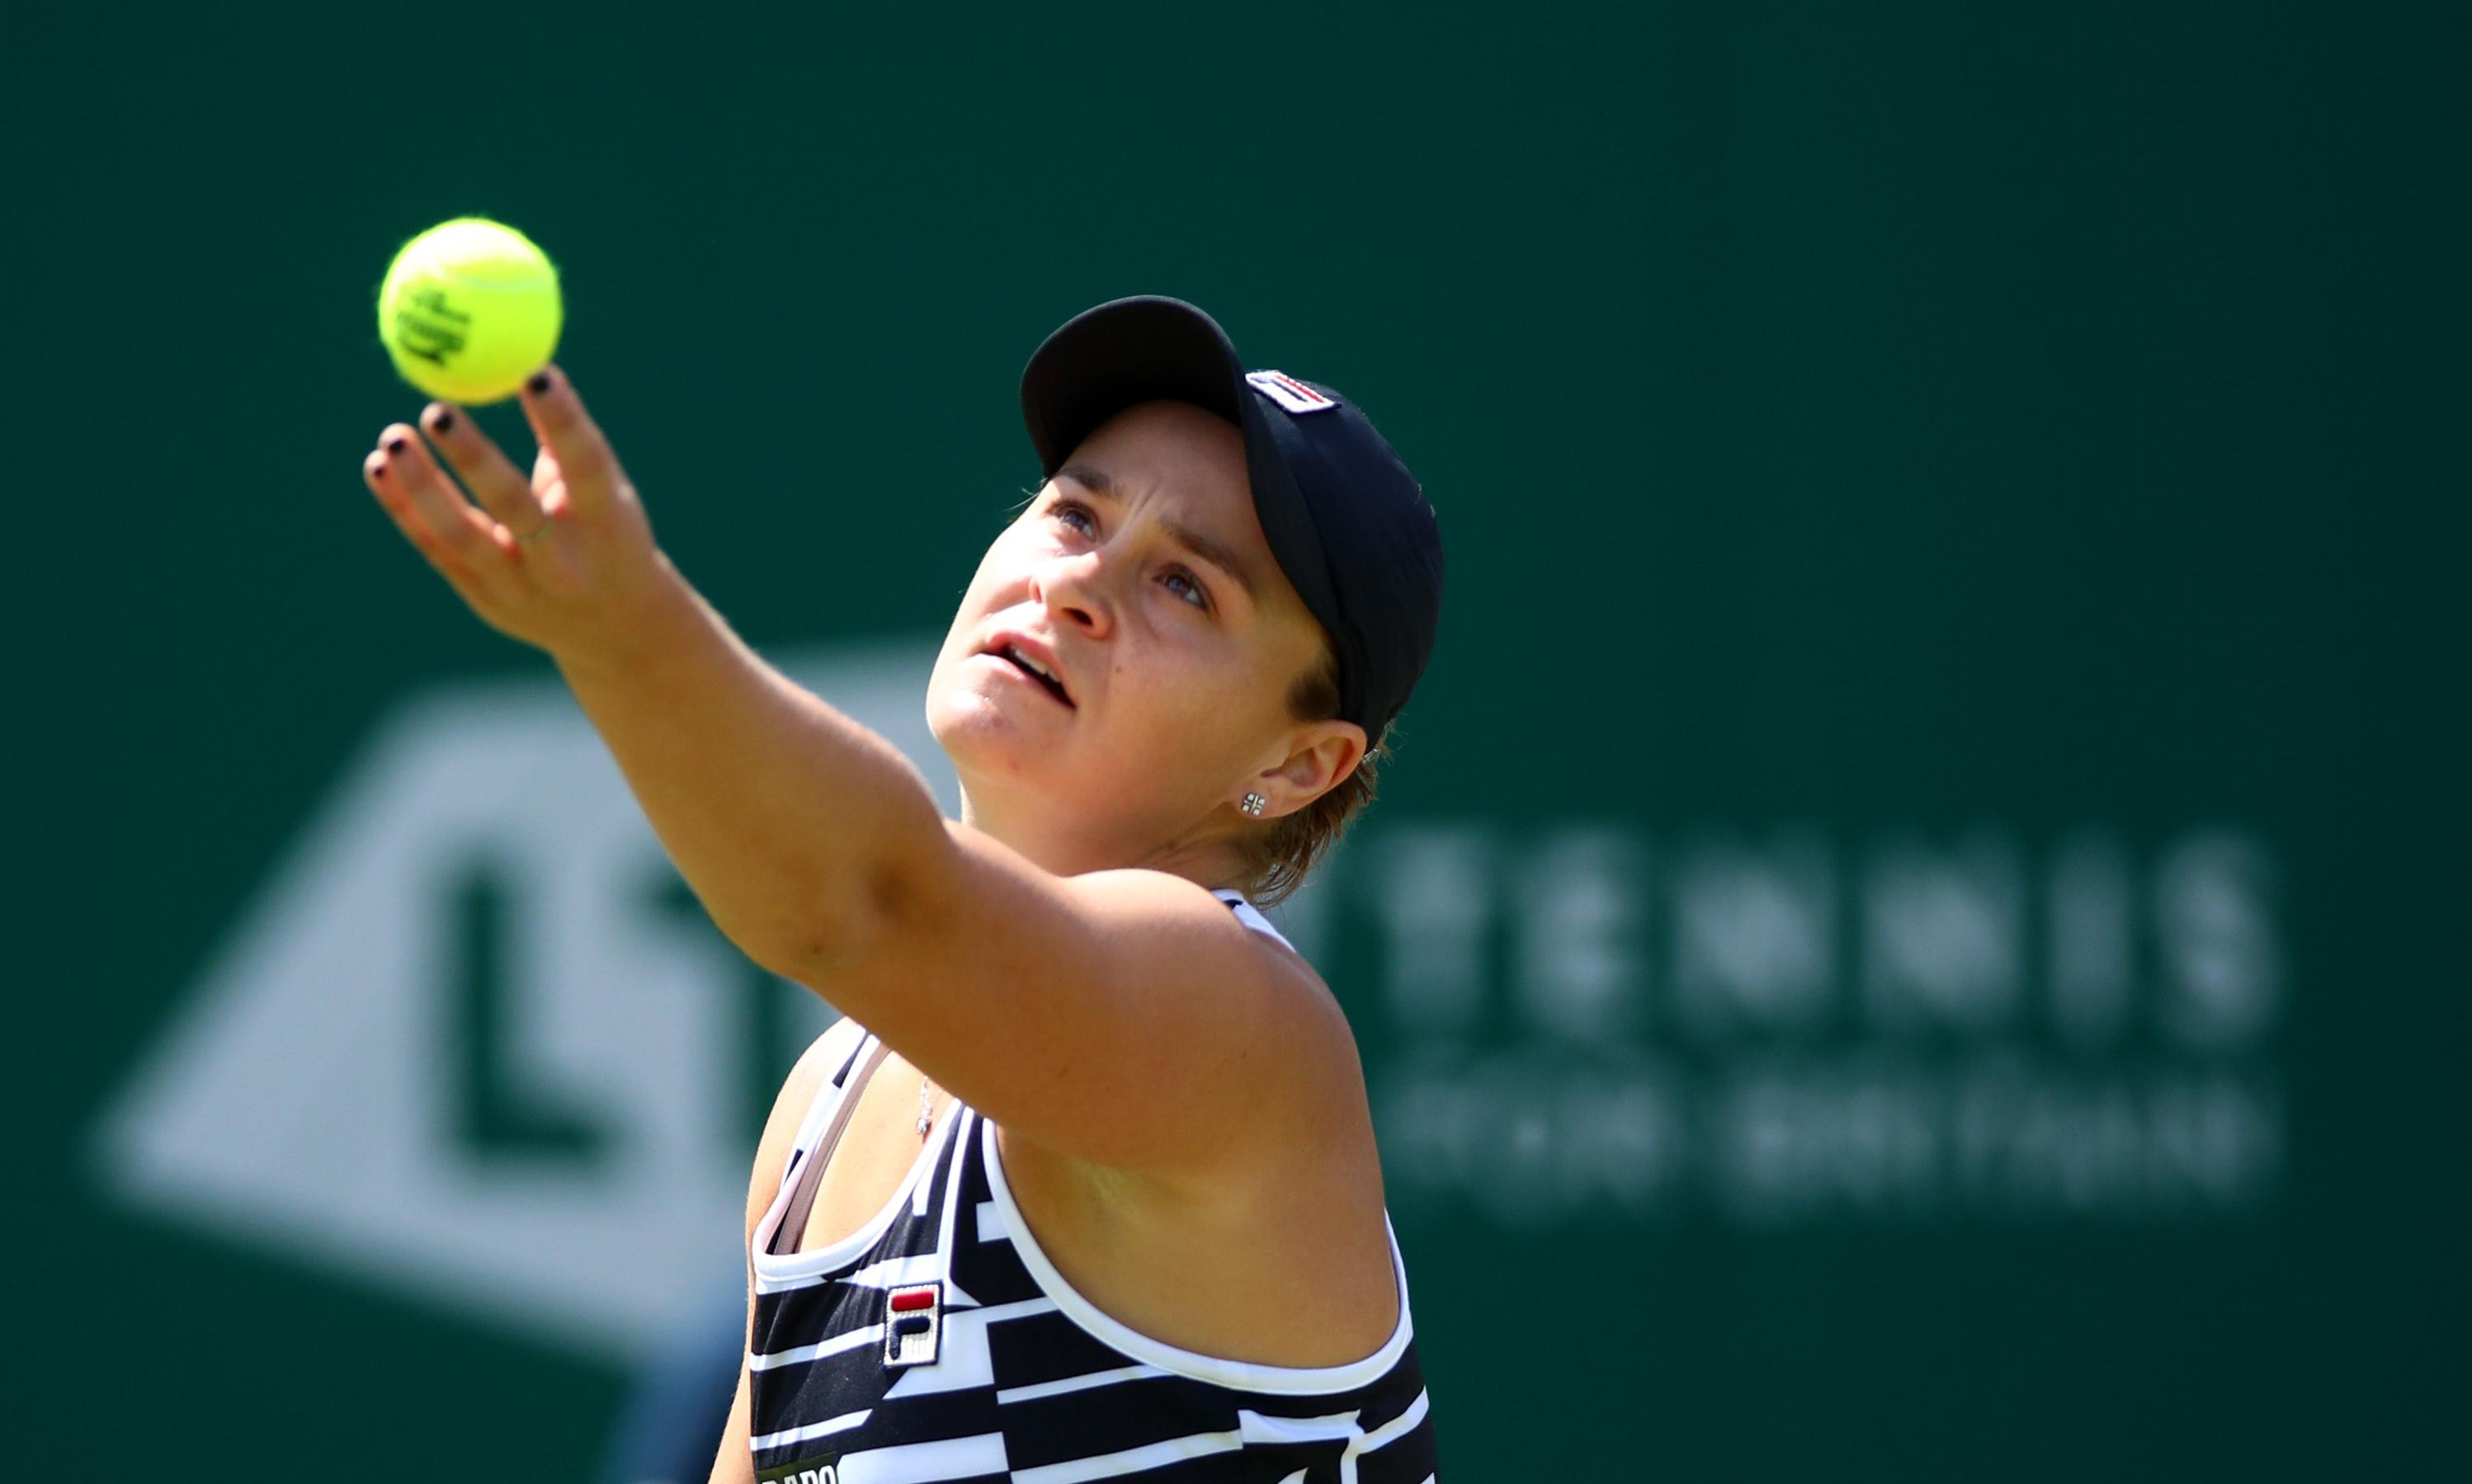 Ashleigh Barty moves to within one win of world No 1 ranking